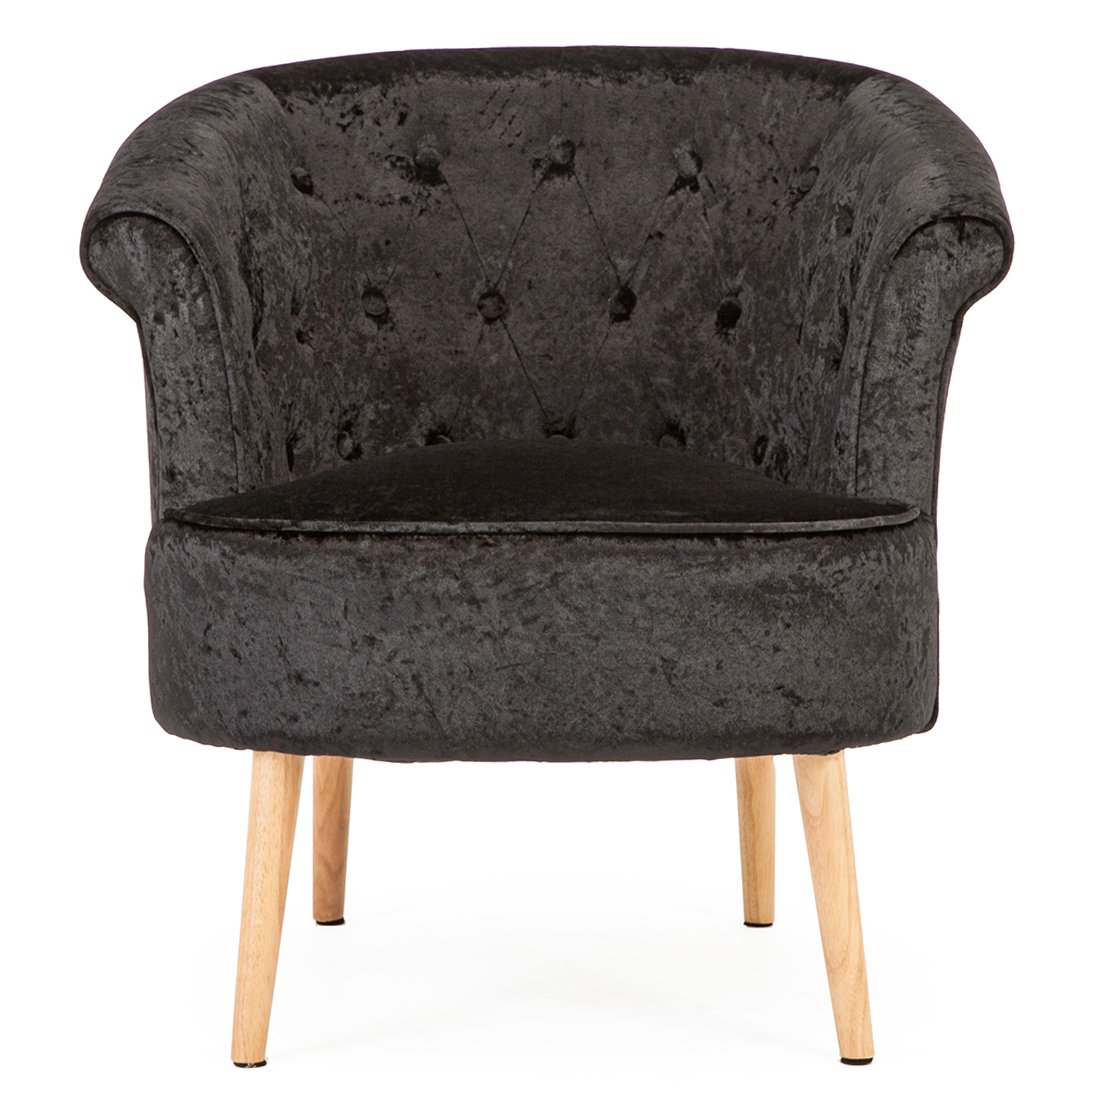 DAHLIA CRUSHED VELVET OCCASIONAL BEDROOM LIVING ROOM ACCENT TUB CHAIR FABRIC ARMCHAIR (Black) Cosy Chair